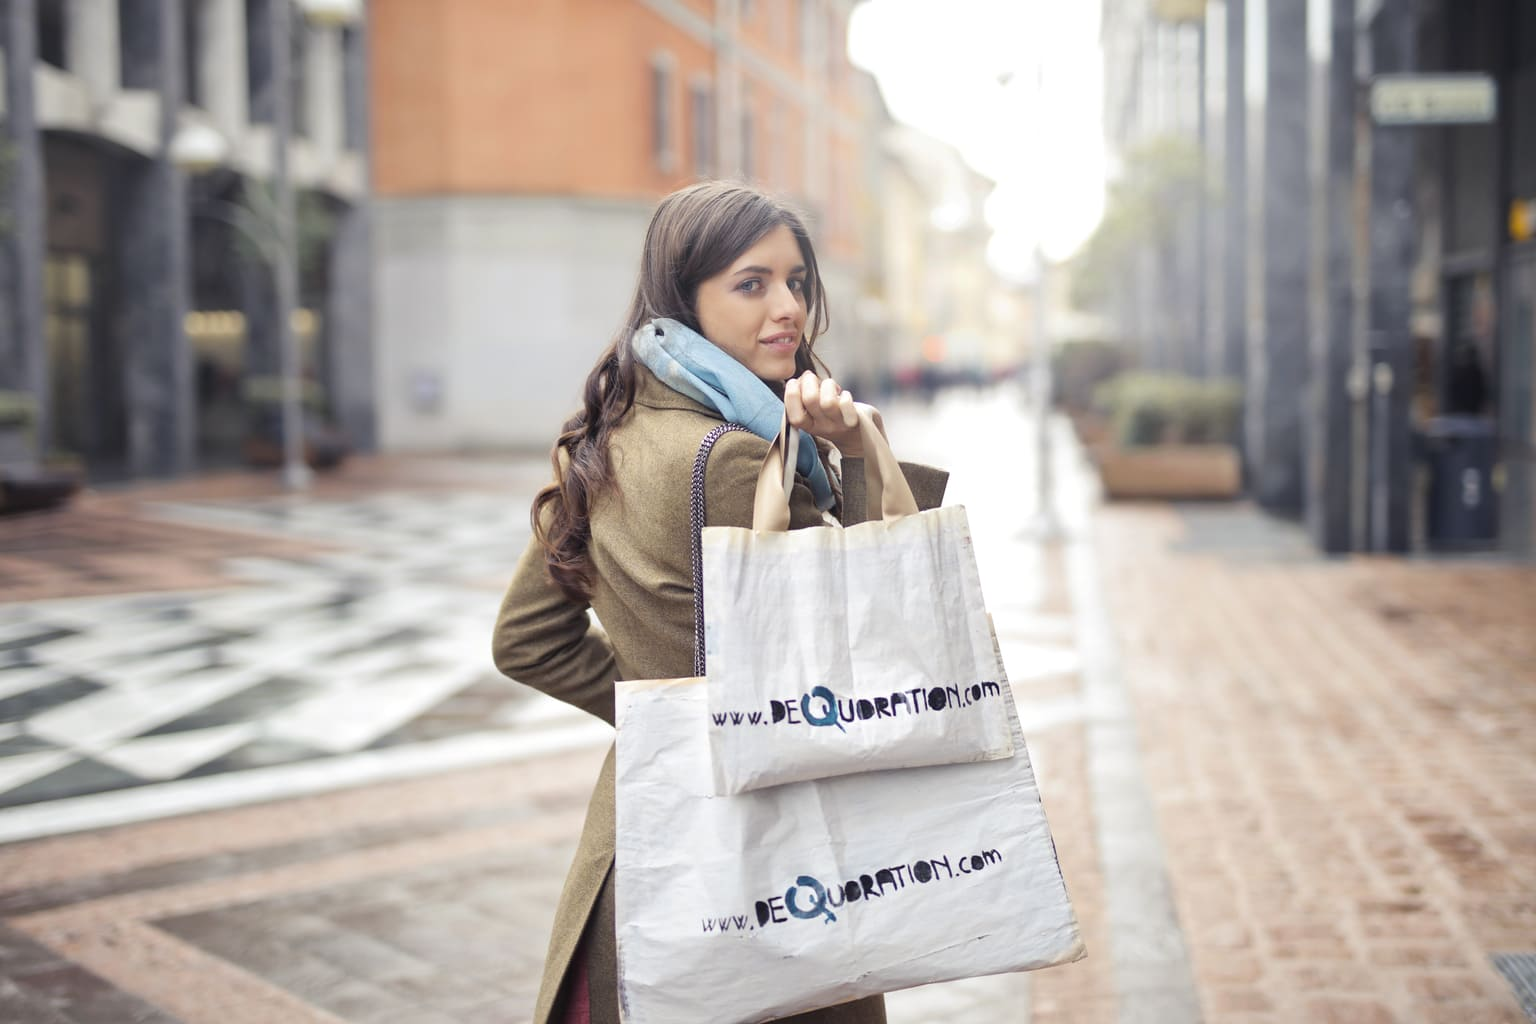 Photo of woman walking down the street looking over her shoulder while holding two shopping bags and wearing a coat and scarf